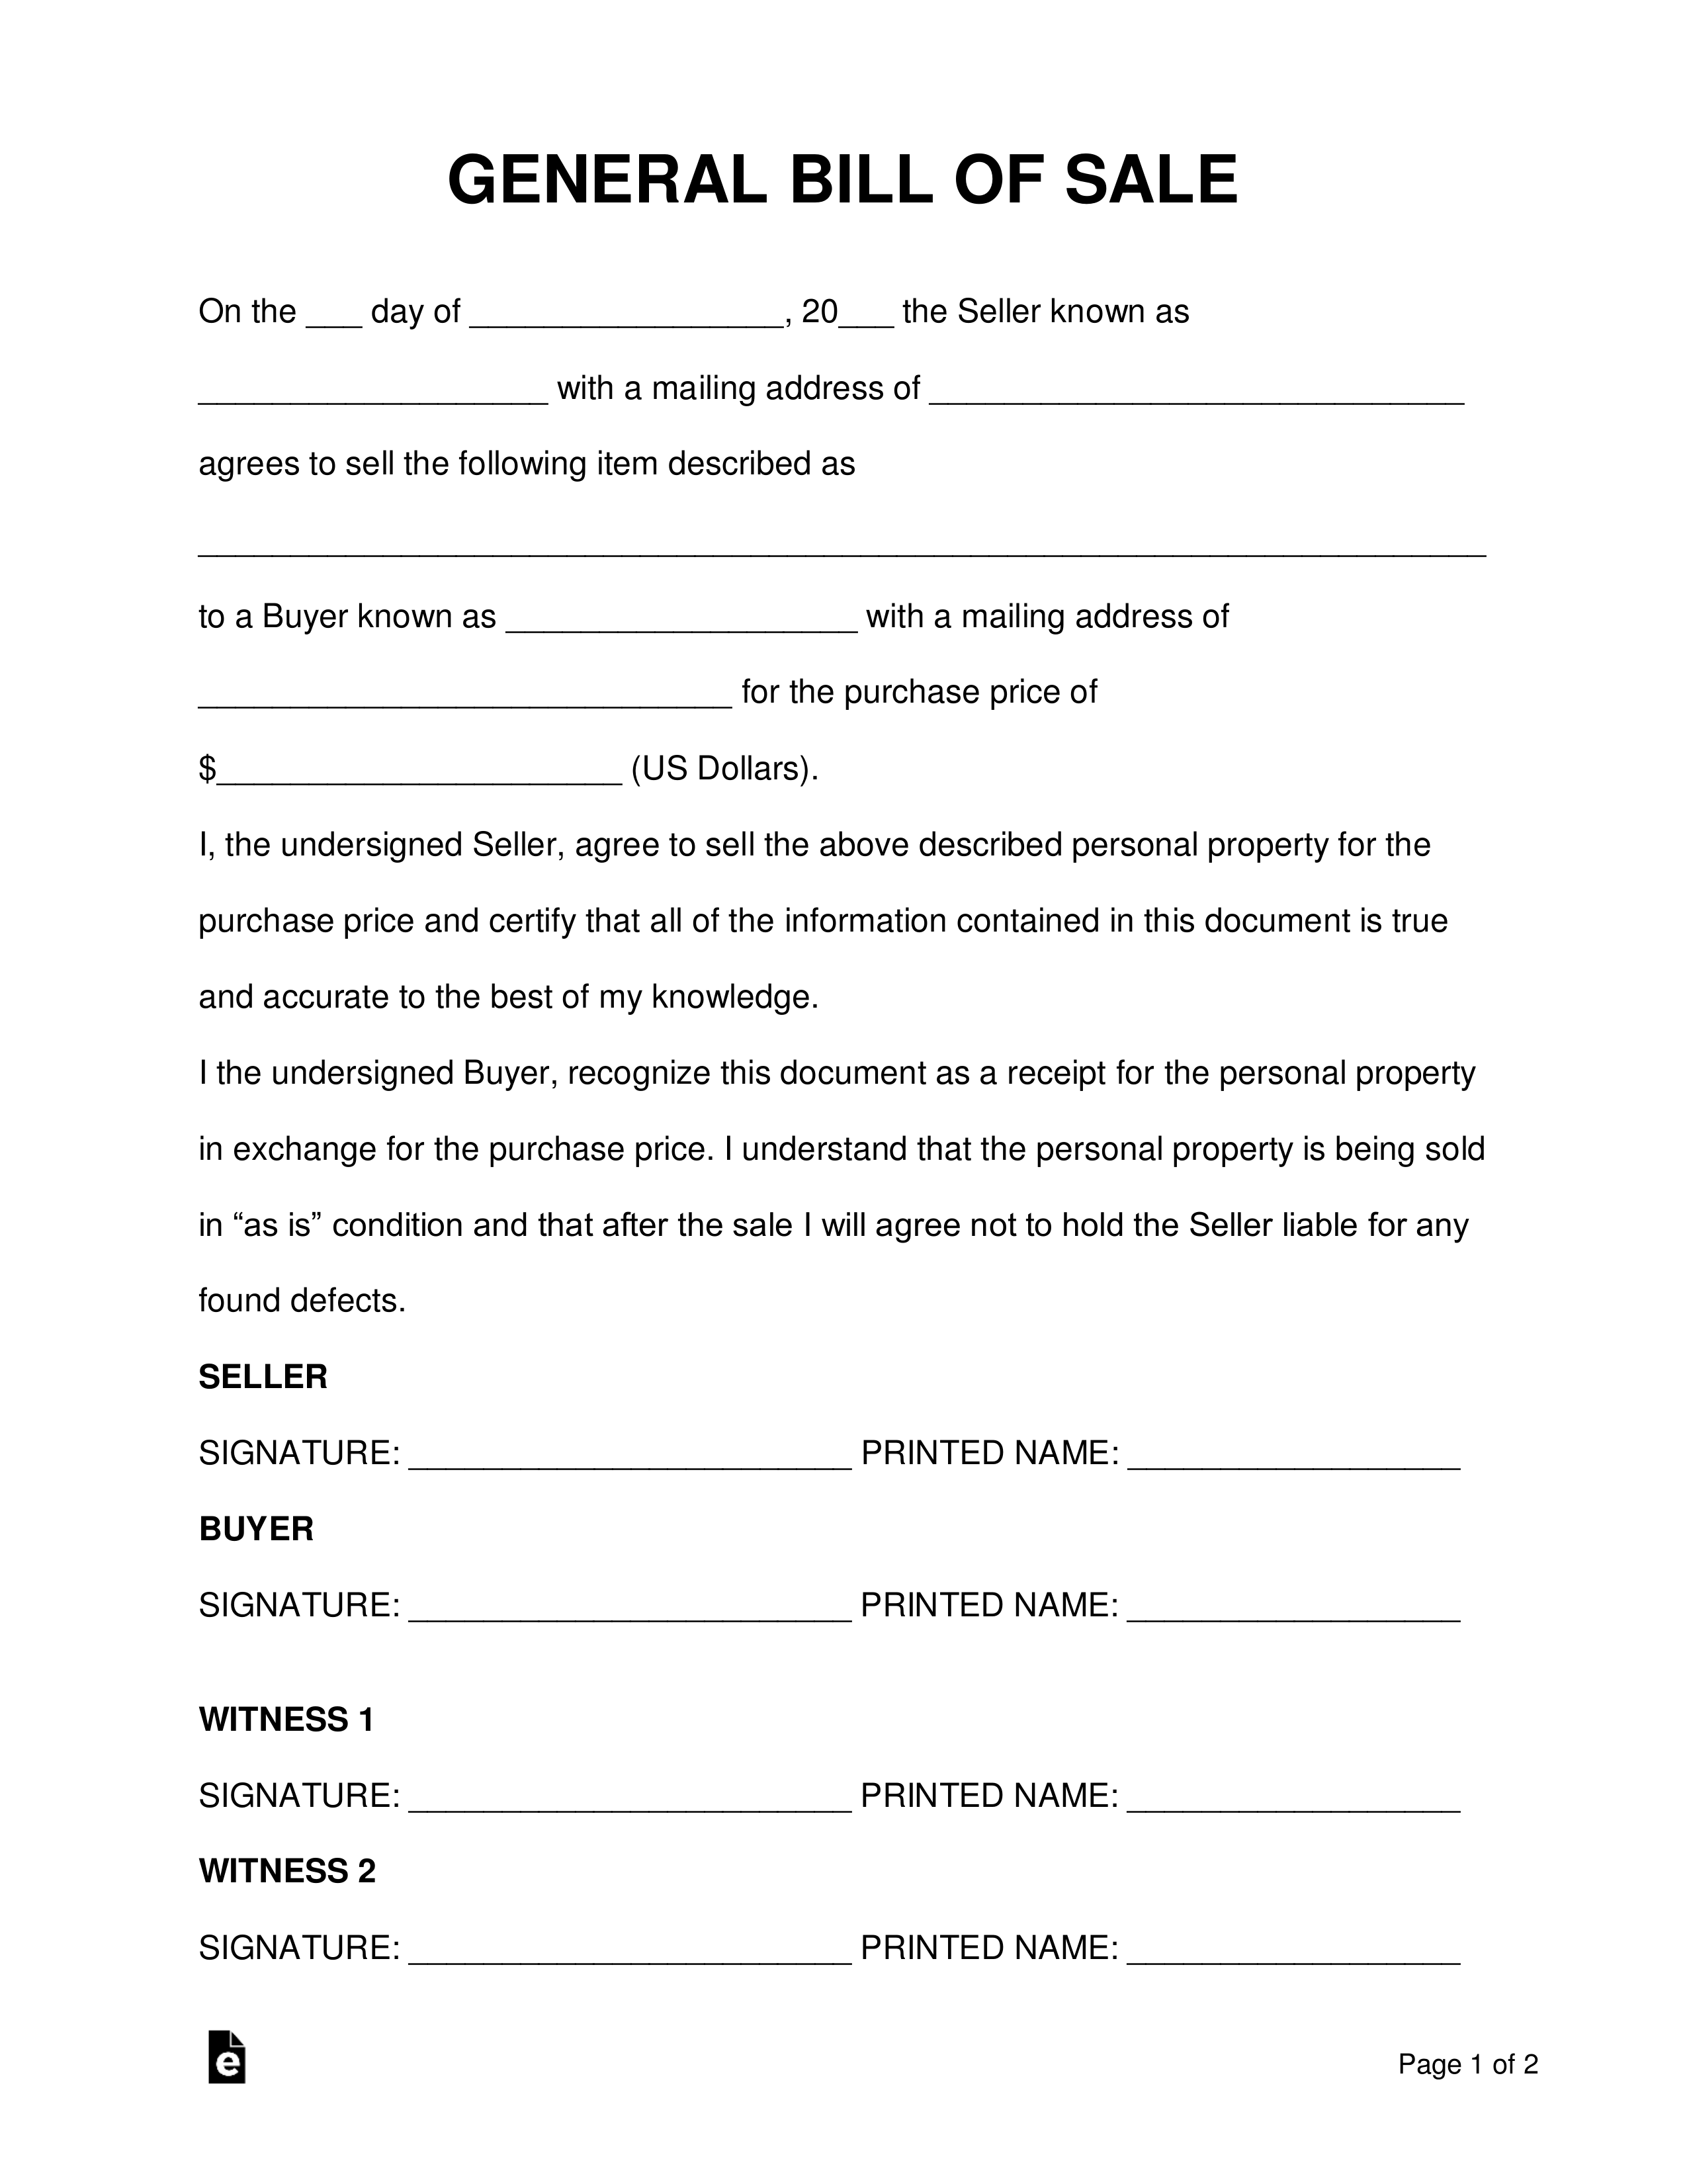 Free General (Personal Property) Bill Of Sale Form - Word